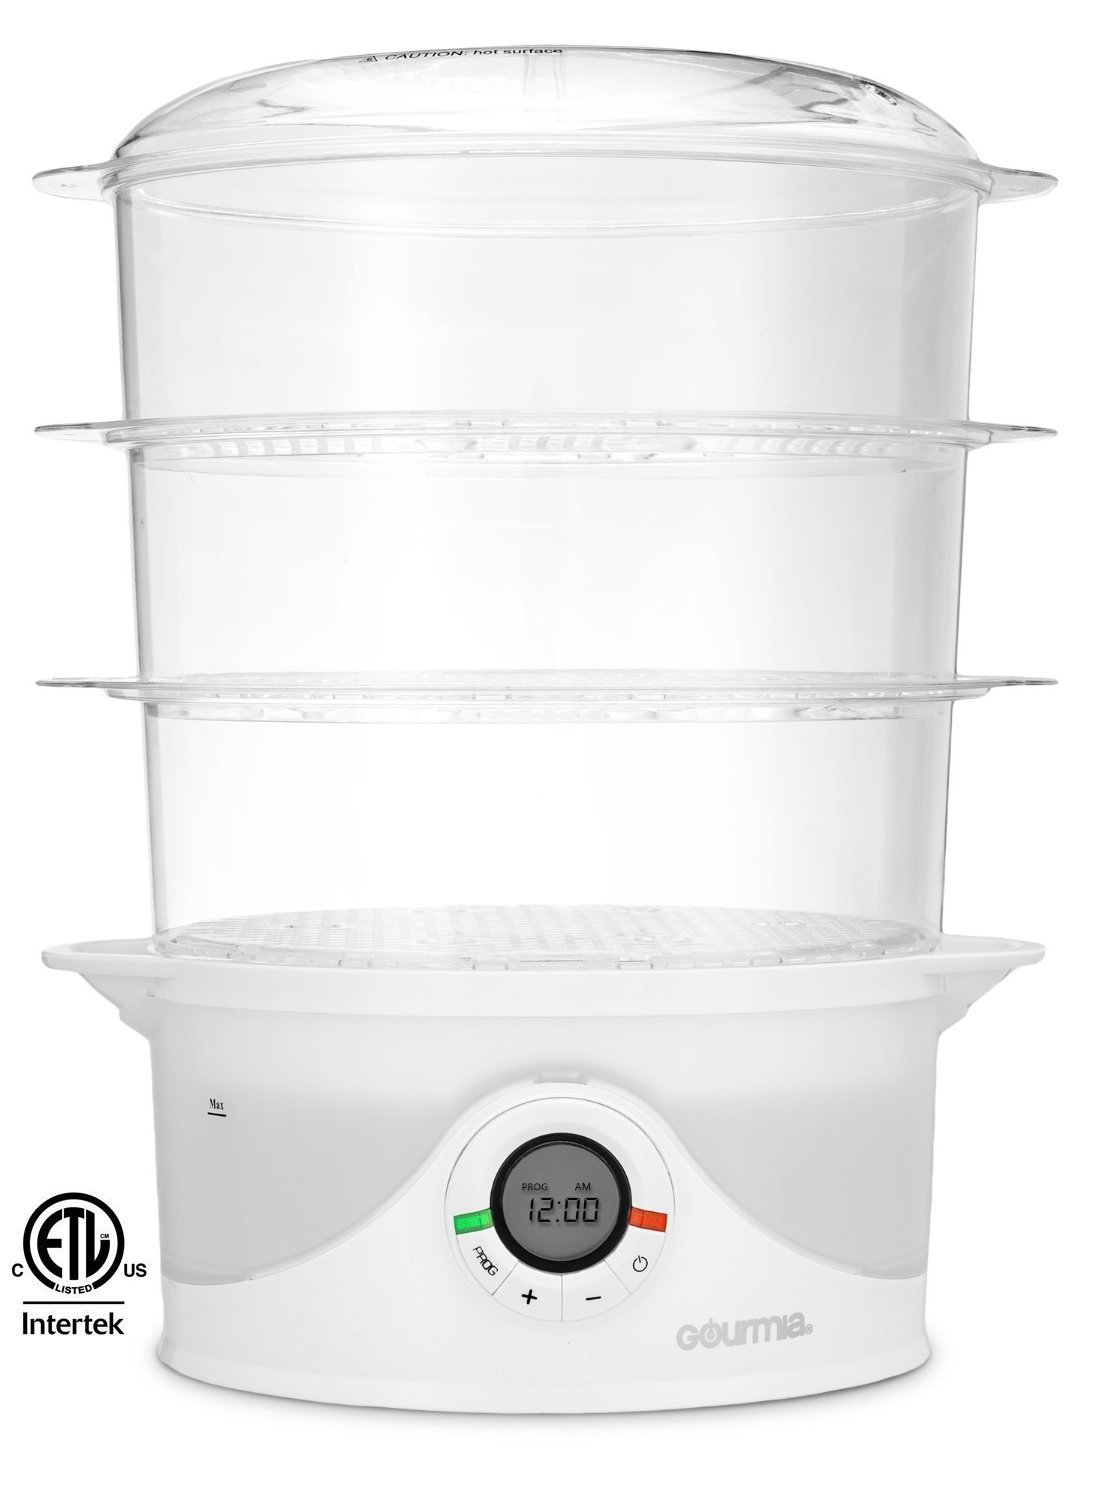 Amazon gourmia gfs300 steamtower300 electronic digital 3 tier amazon gourmia gfs300 steamtower300 electronic digital 3 tier vegetable and food steamer 95 quart bpa free clear free recipe book included forumfinder Choice Image